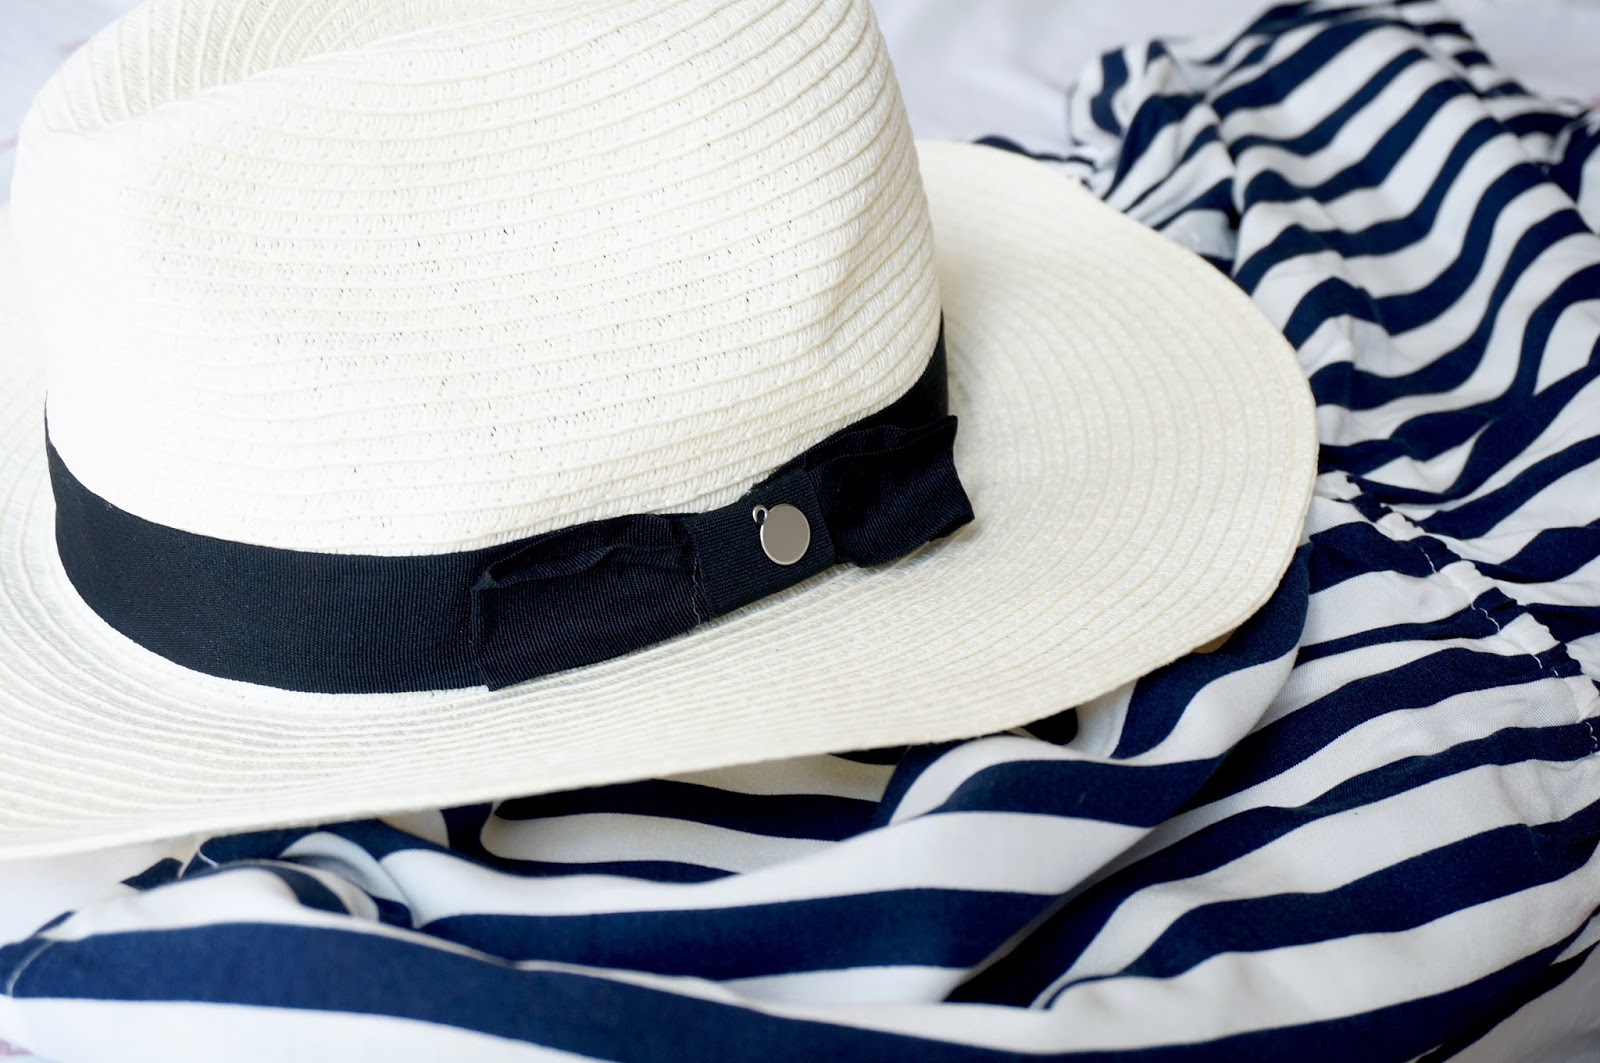 BEACH BAG ESSENTIALS TO KEEP YOU COOL, CALM & COLLECTED